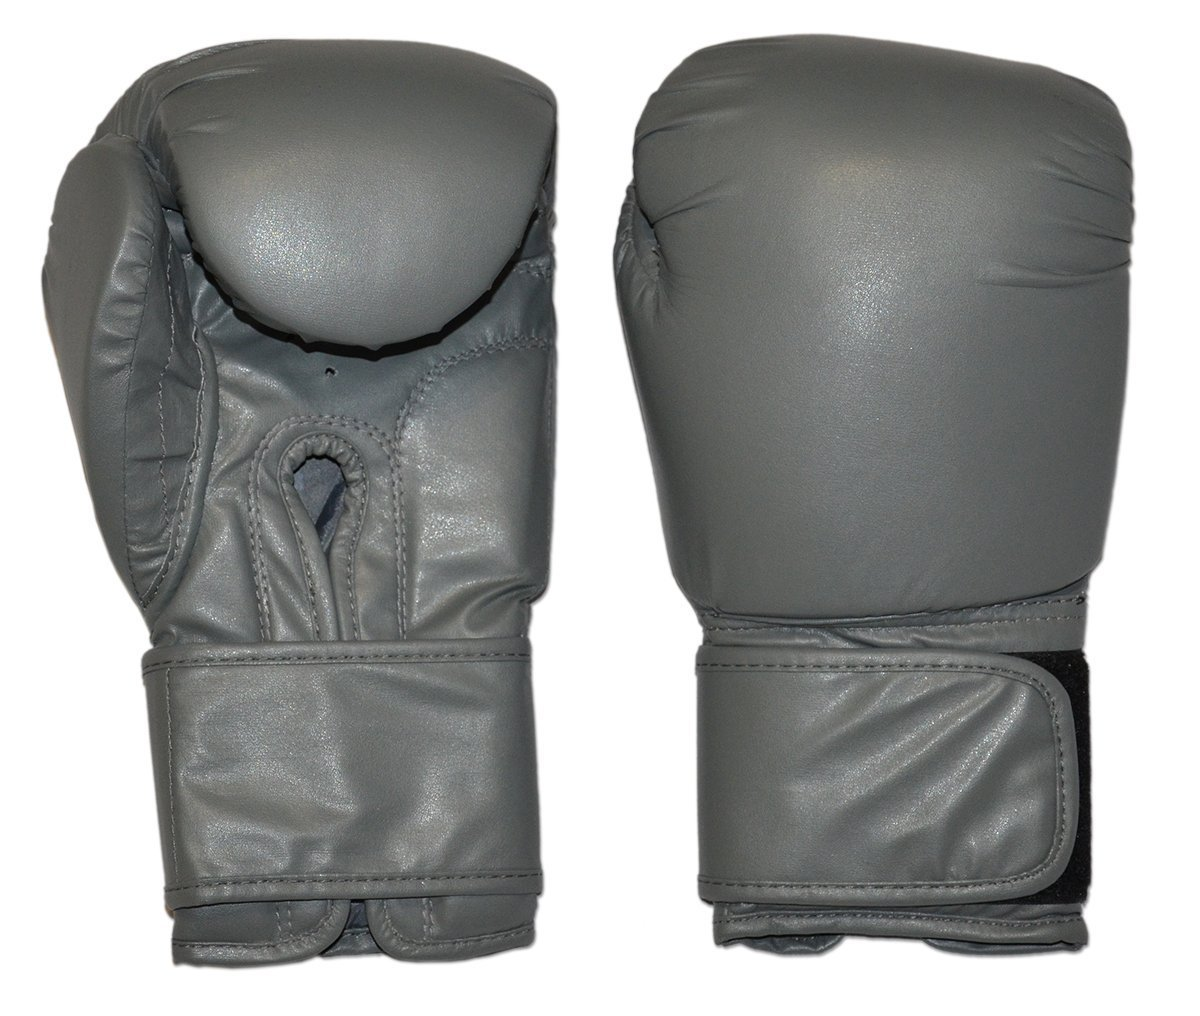 r2 C noロゴSuper Bag Gloves for Muay Thai , MMA , Kickboxing、ボクシング、Krav Maga Cardio Aerobic。Regular 10oz